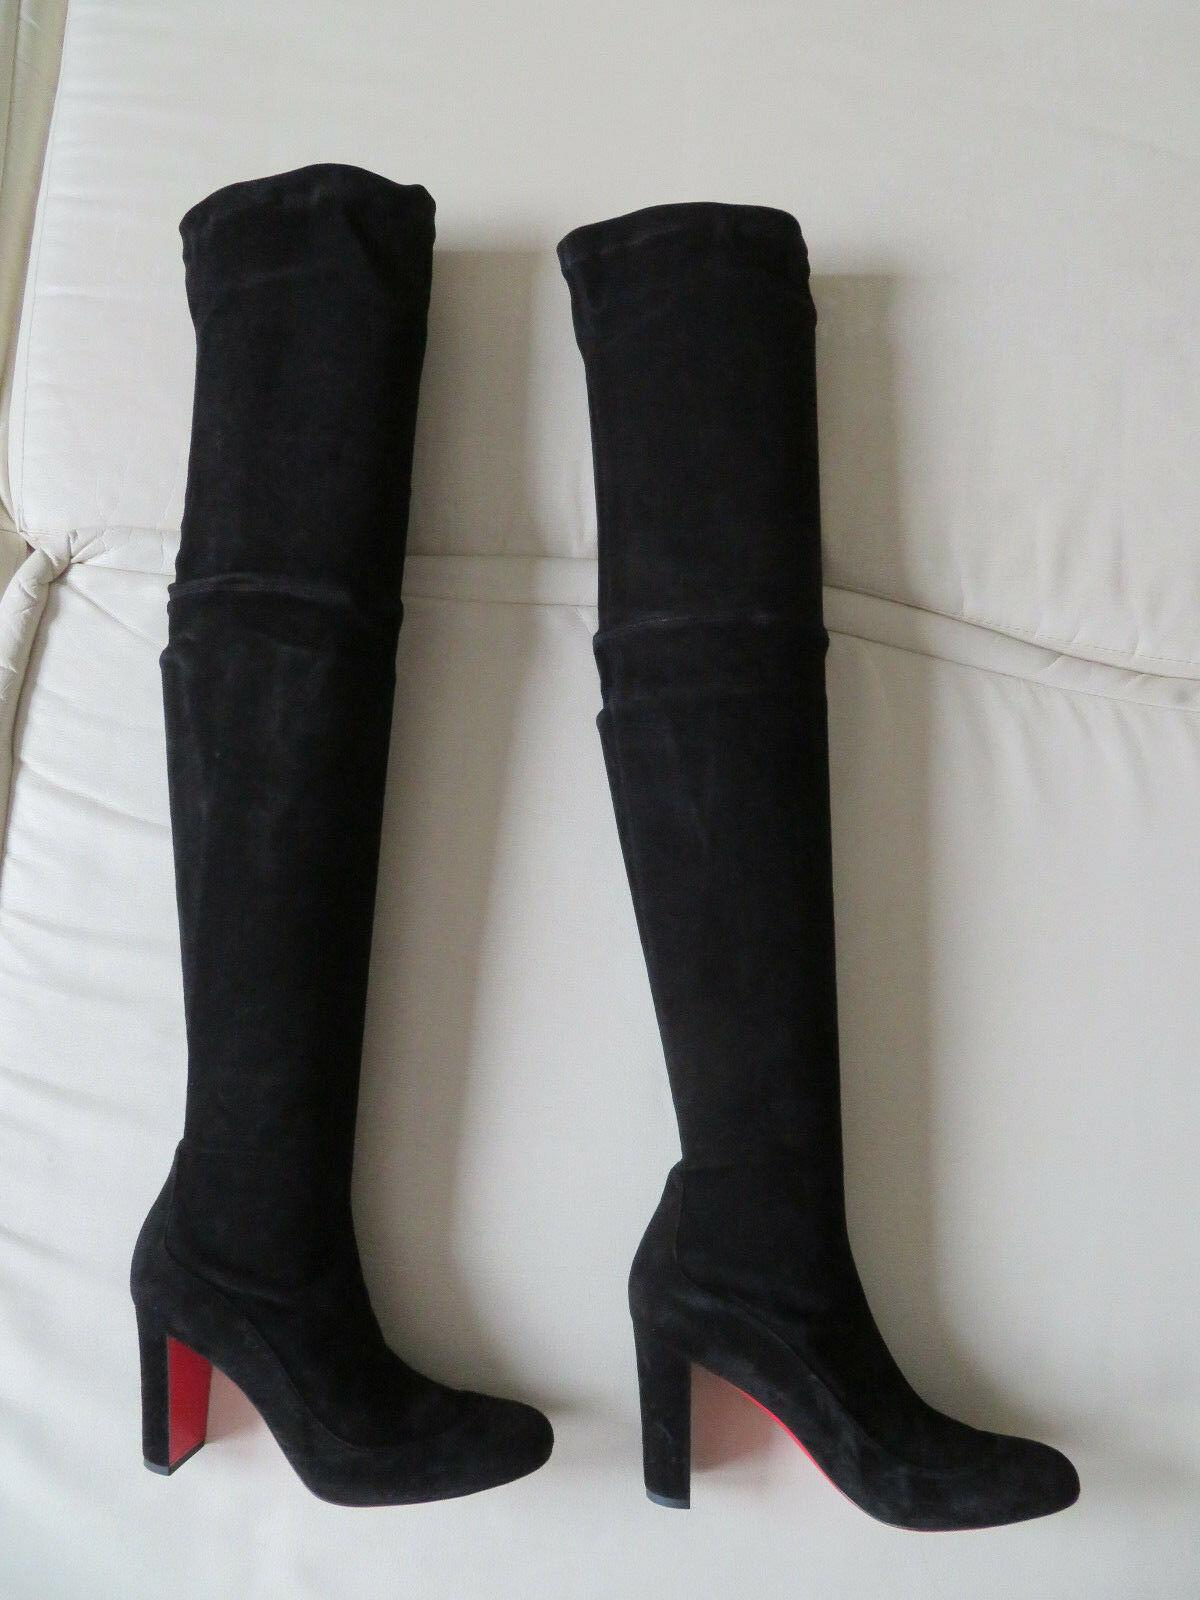 Christian Louboutin Kiss Me Gena 85 OTK Over Knee Black Suede Boots ladies shoes